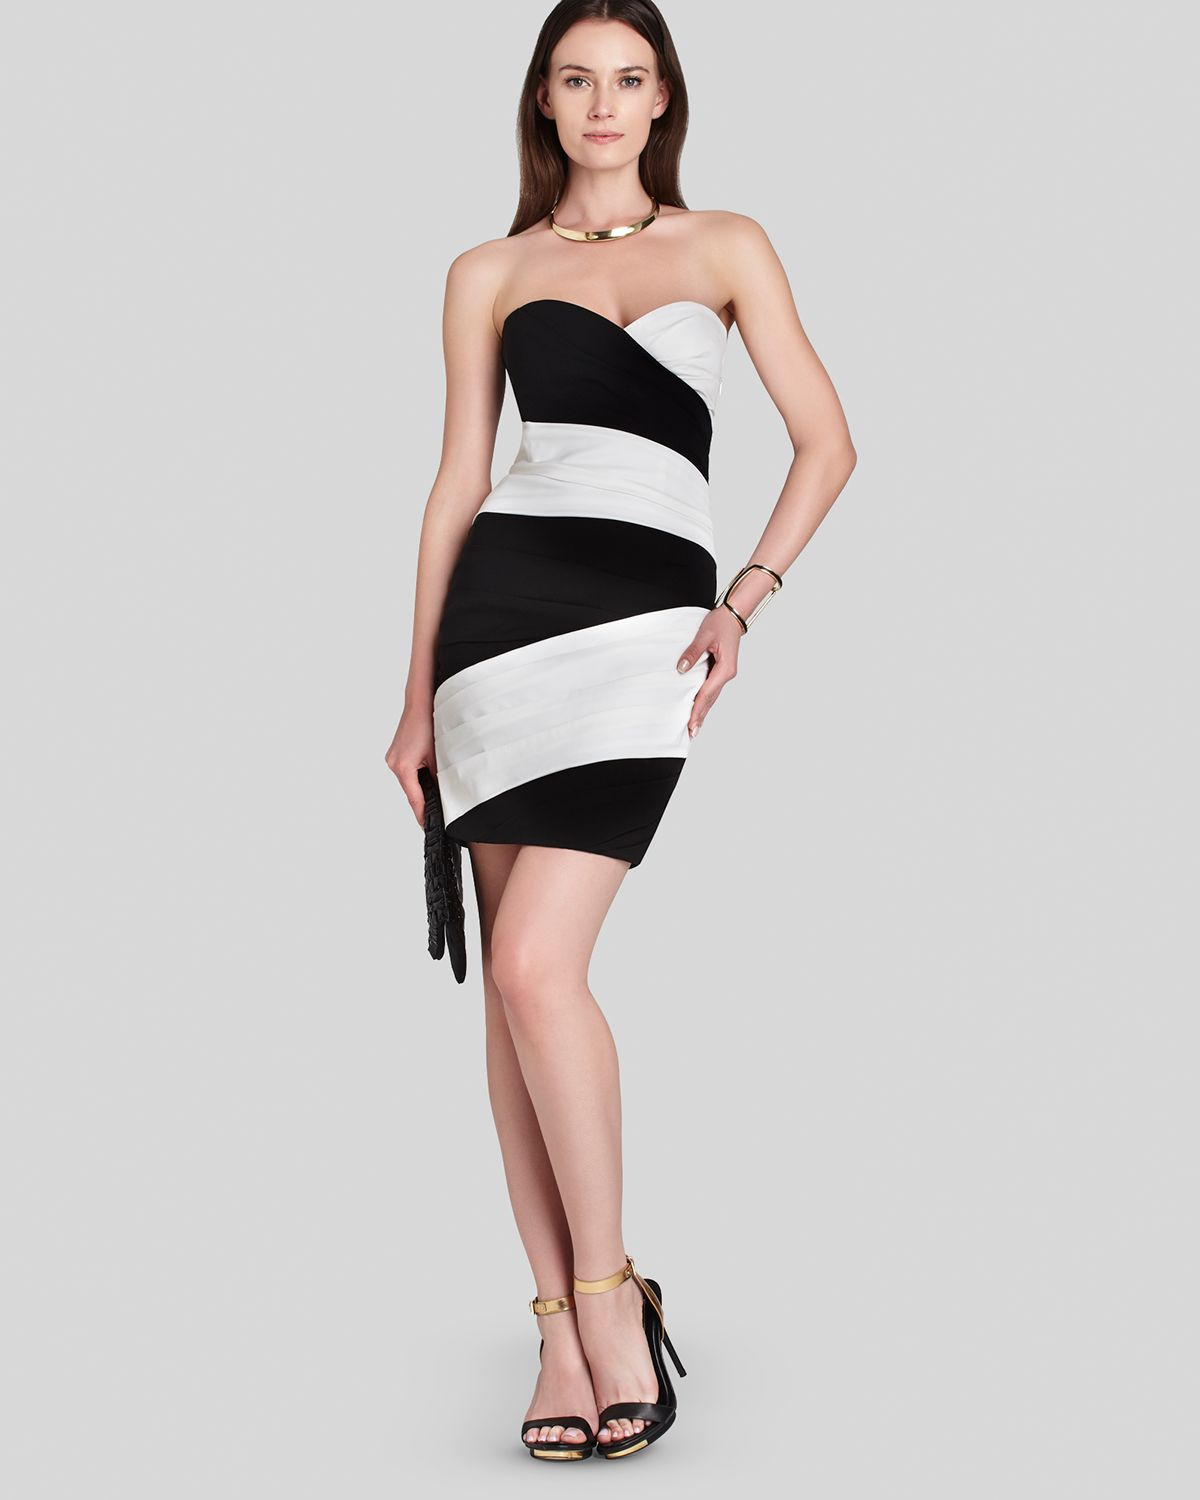 Bcbg black and white cocktail dress